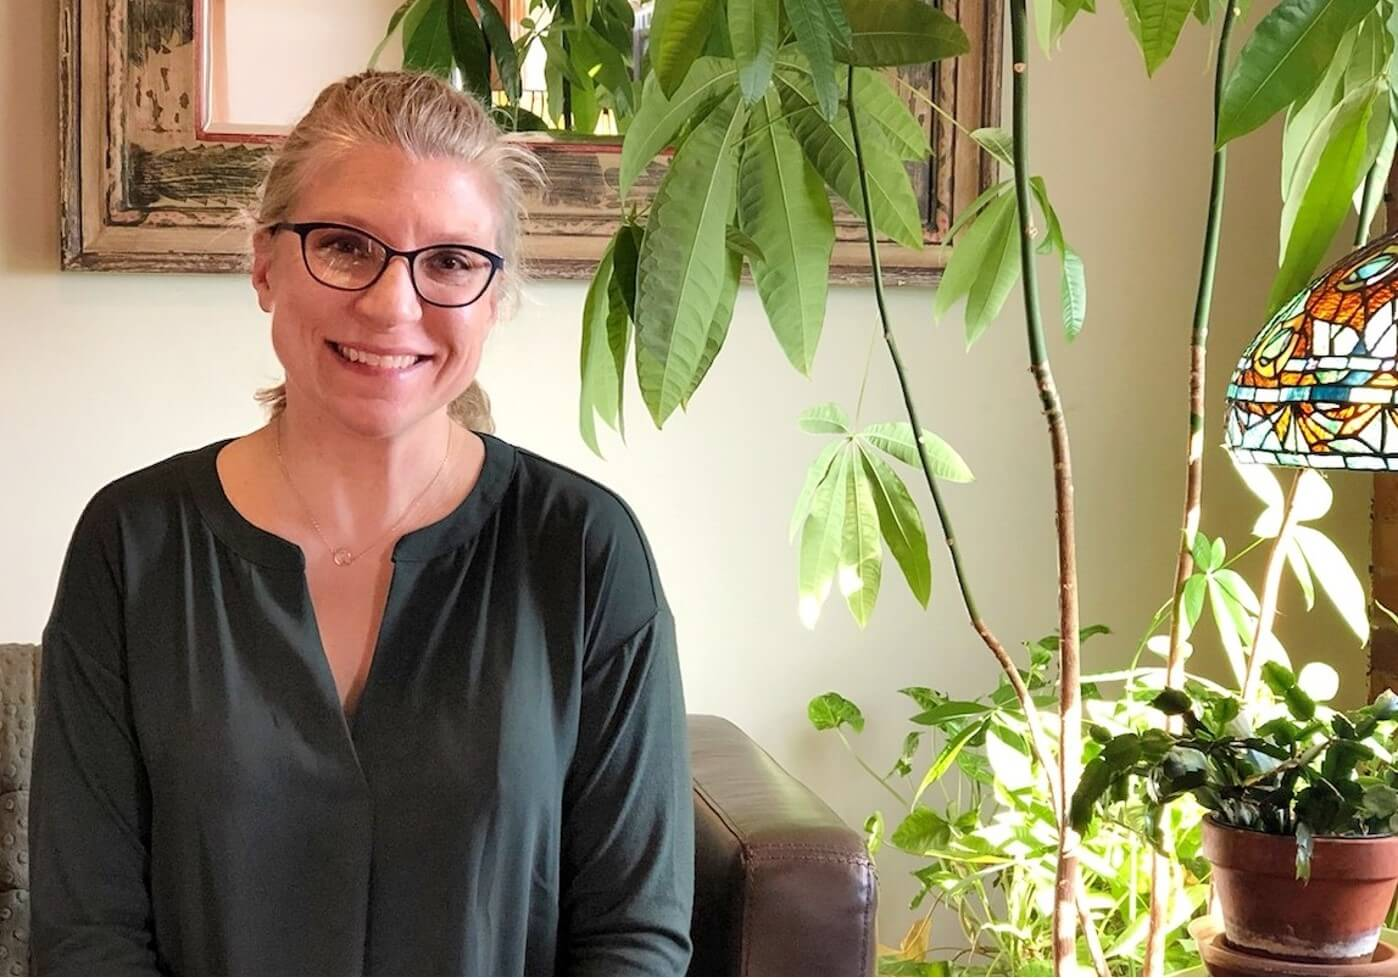 Supervision, consultation and trainings for therapists | Julia Clowney, LICSW Holistic Therapy St. Paul MN